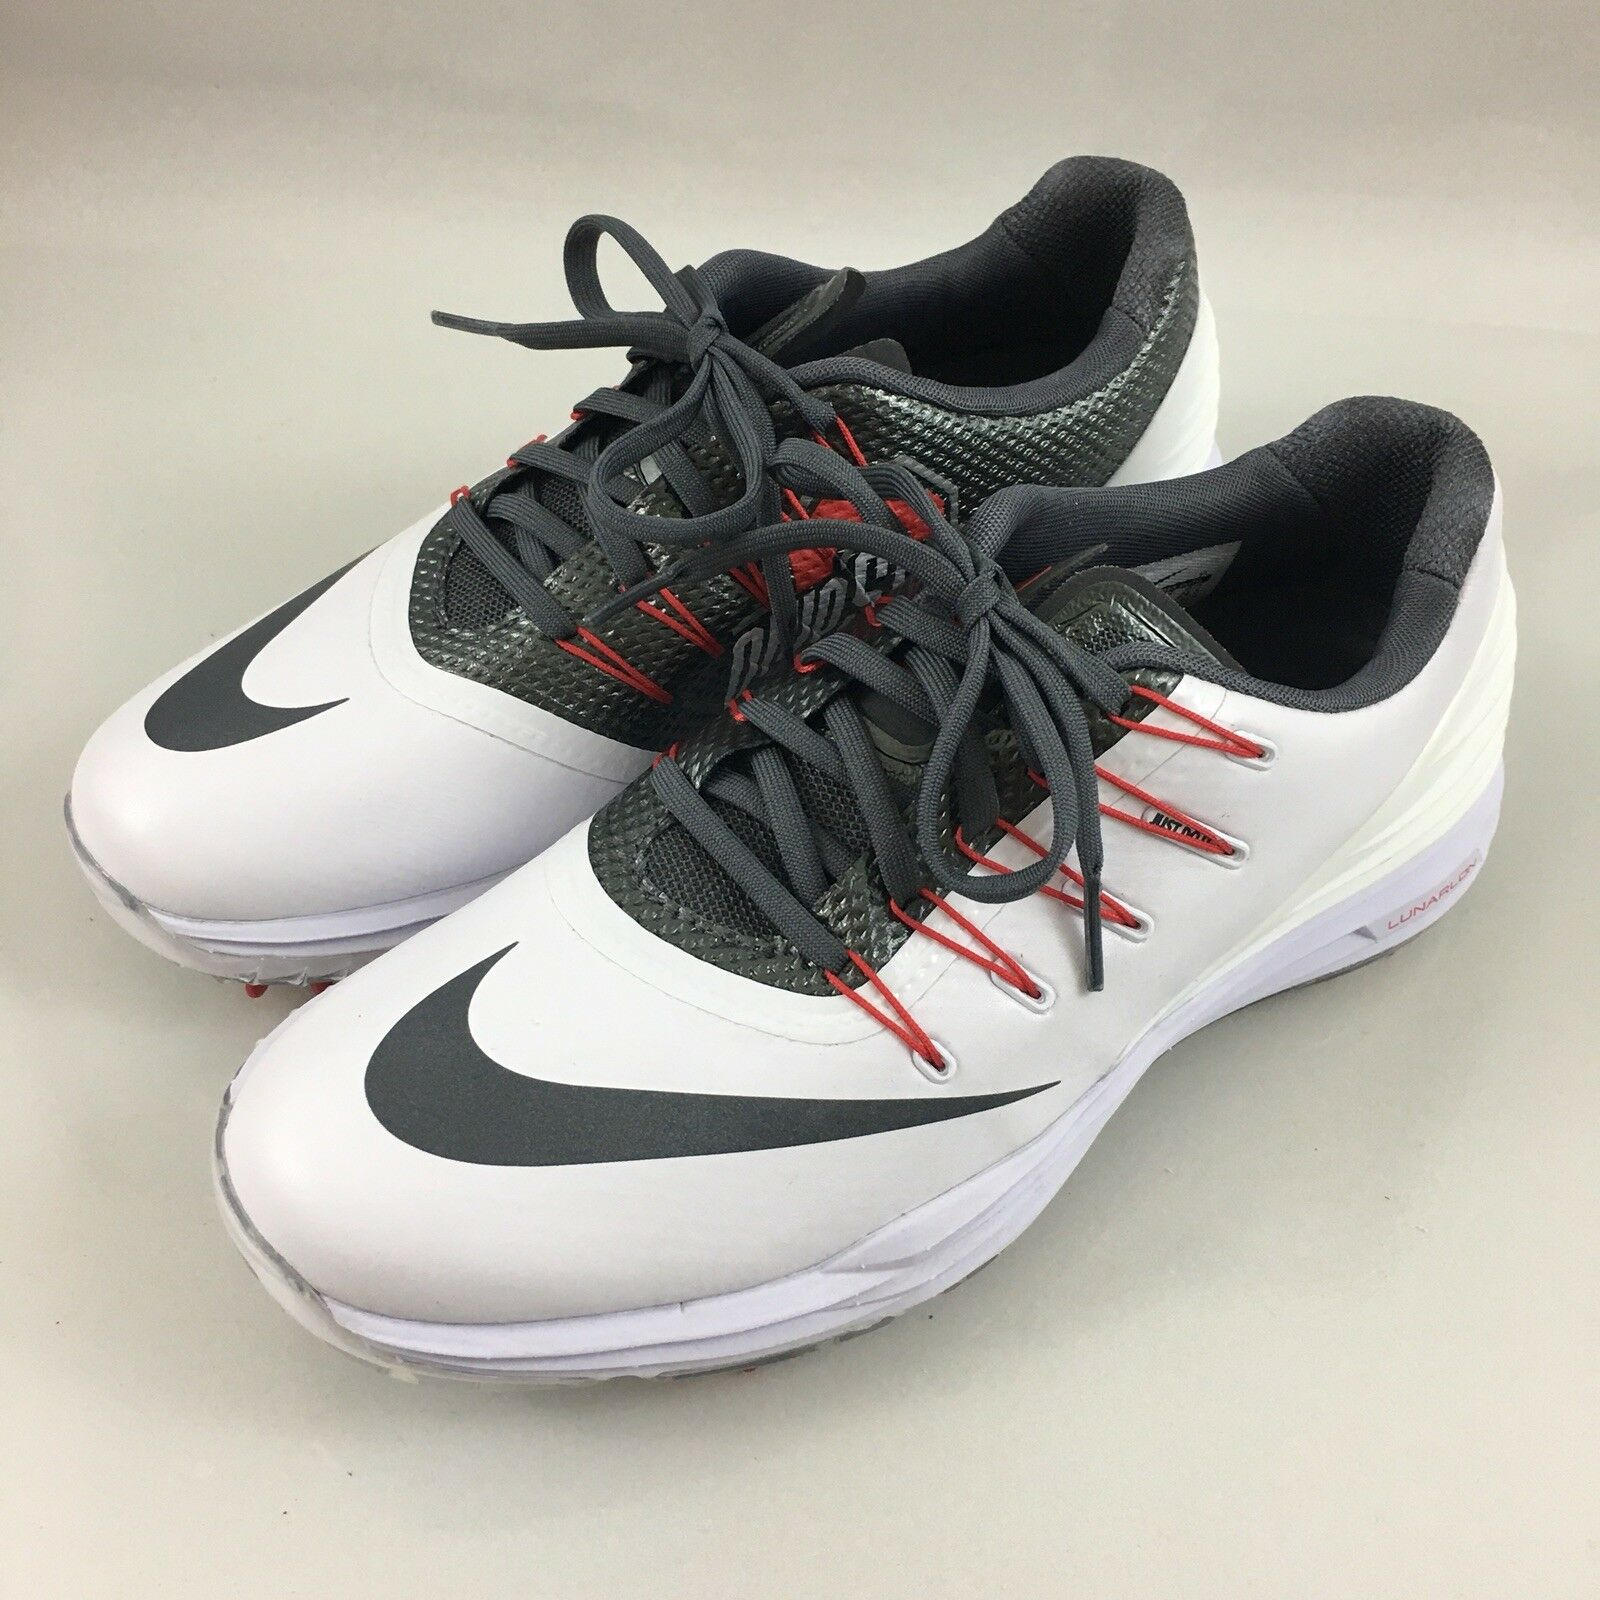 new arrival 0b884 c266a ... Nike Lunar Golf Lunar Nike Control 4 College (Ohio State) shoes  838116-104 ...